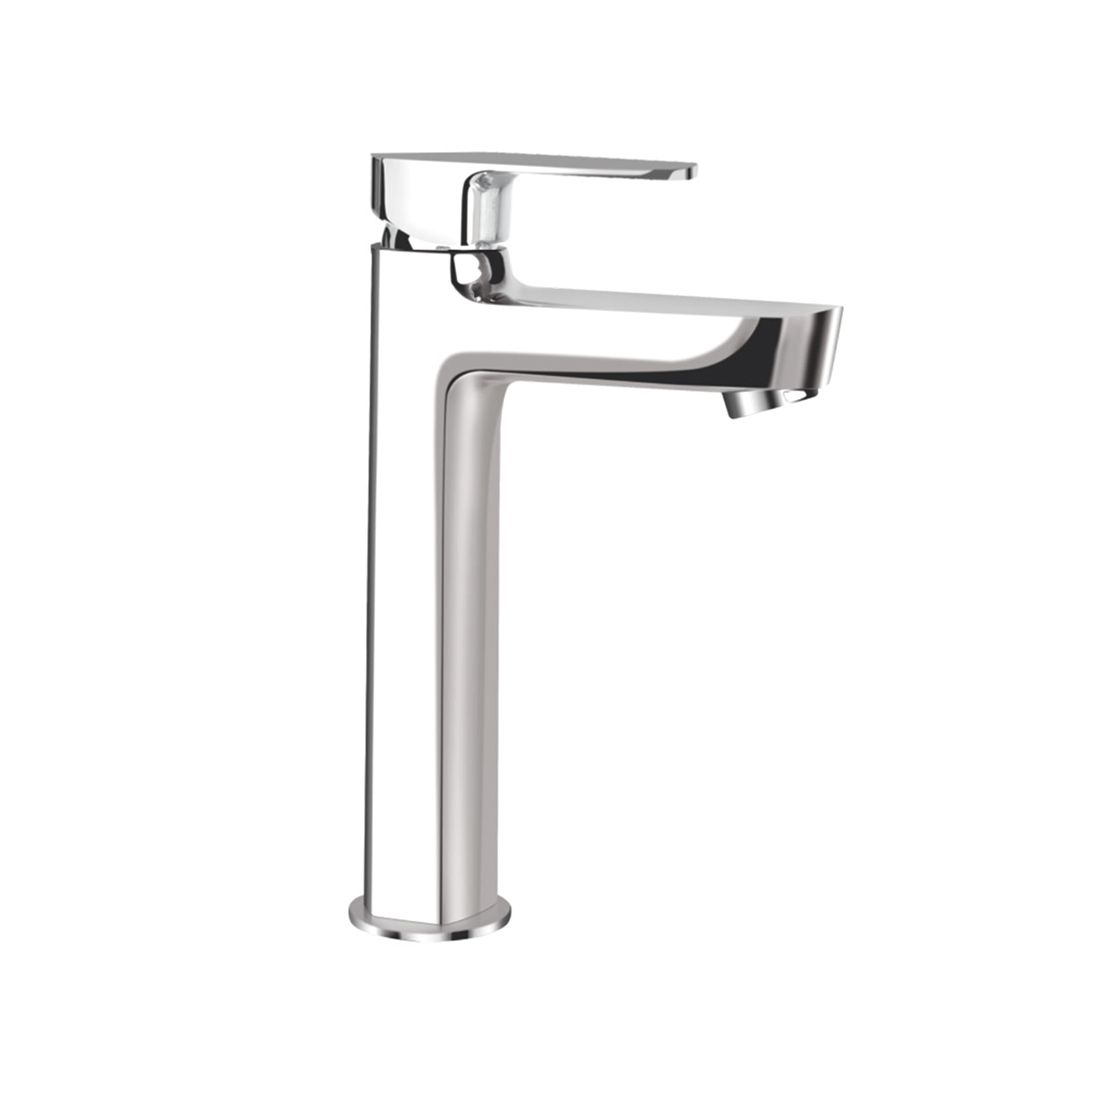 Kerovit Orion KB611011 Single Lever Tall Basin Mixer Without Pop-Up